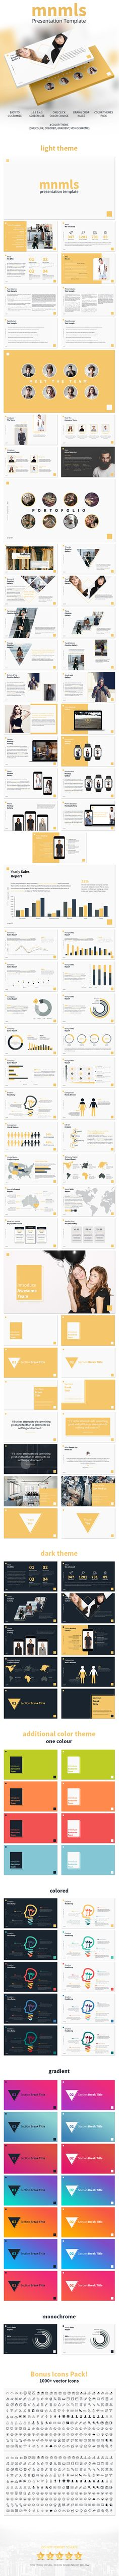 mnmls  Clean Creative Unique Powerpoint Template — Powerpoint PPTX #fashion #yellow • Download ➝ https://graphicriver.net/item/mnmls-clean-creative-unique-powerpoint-template/19649043?ref=pxcr